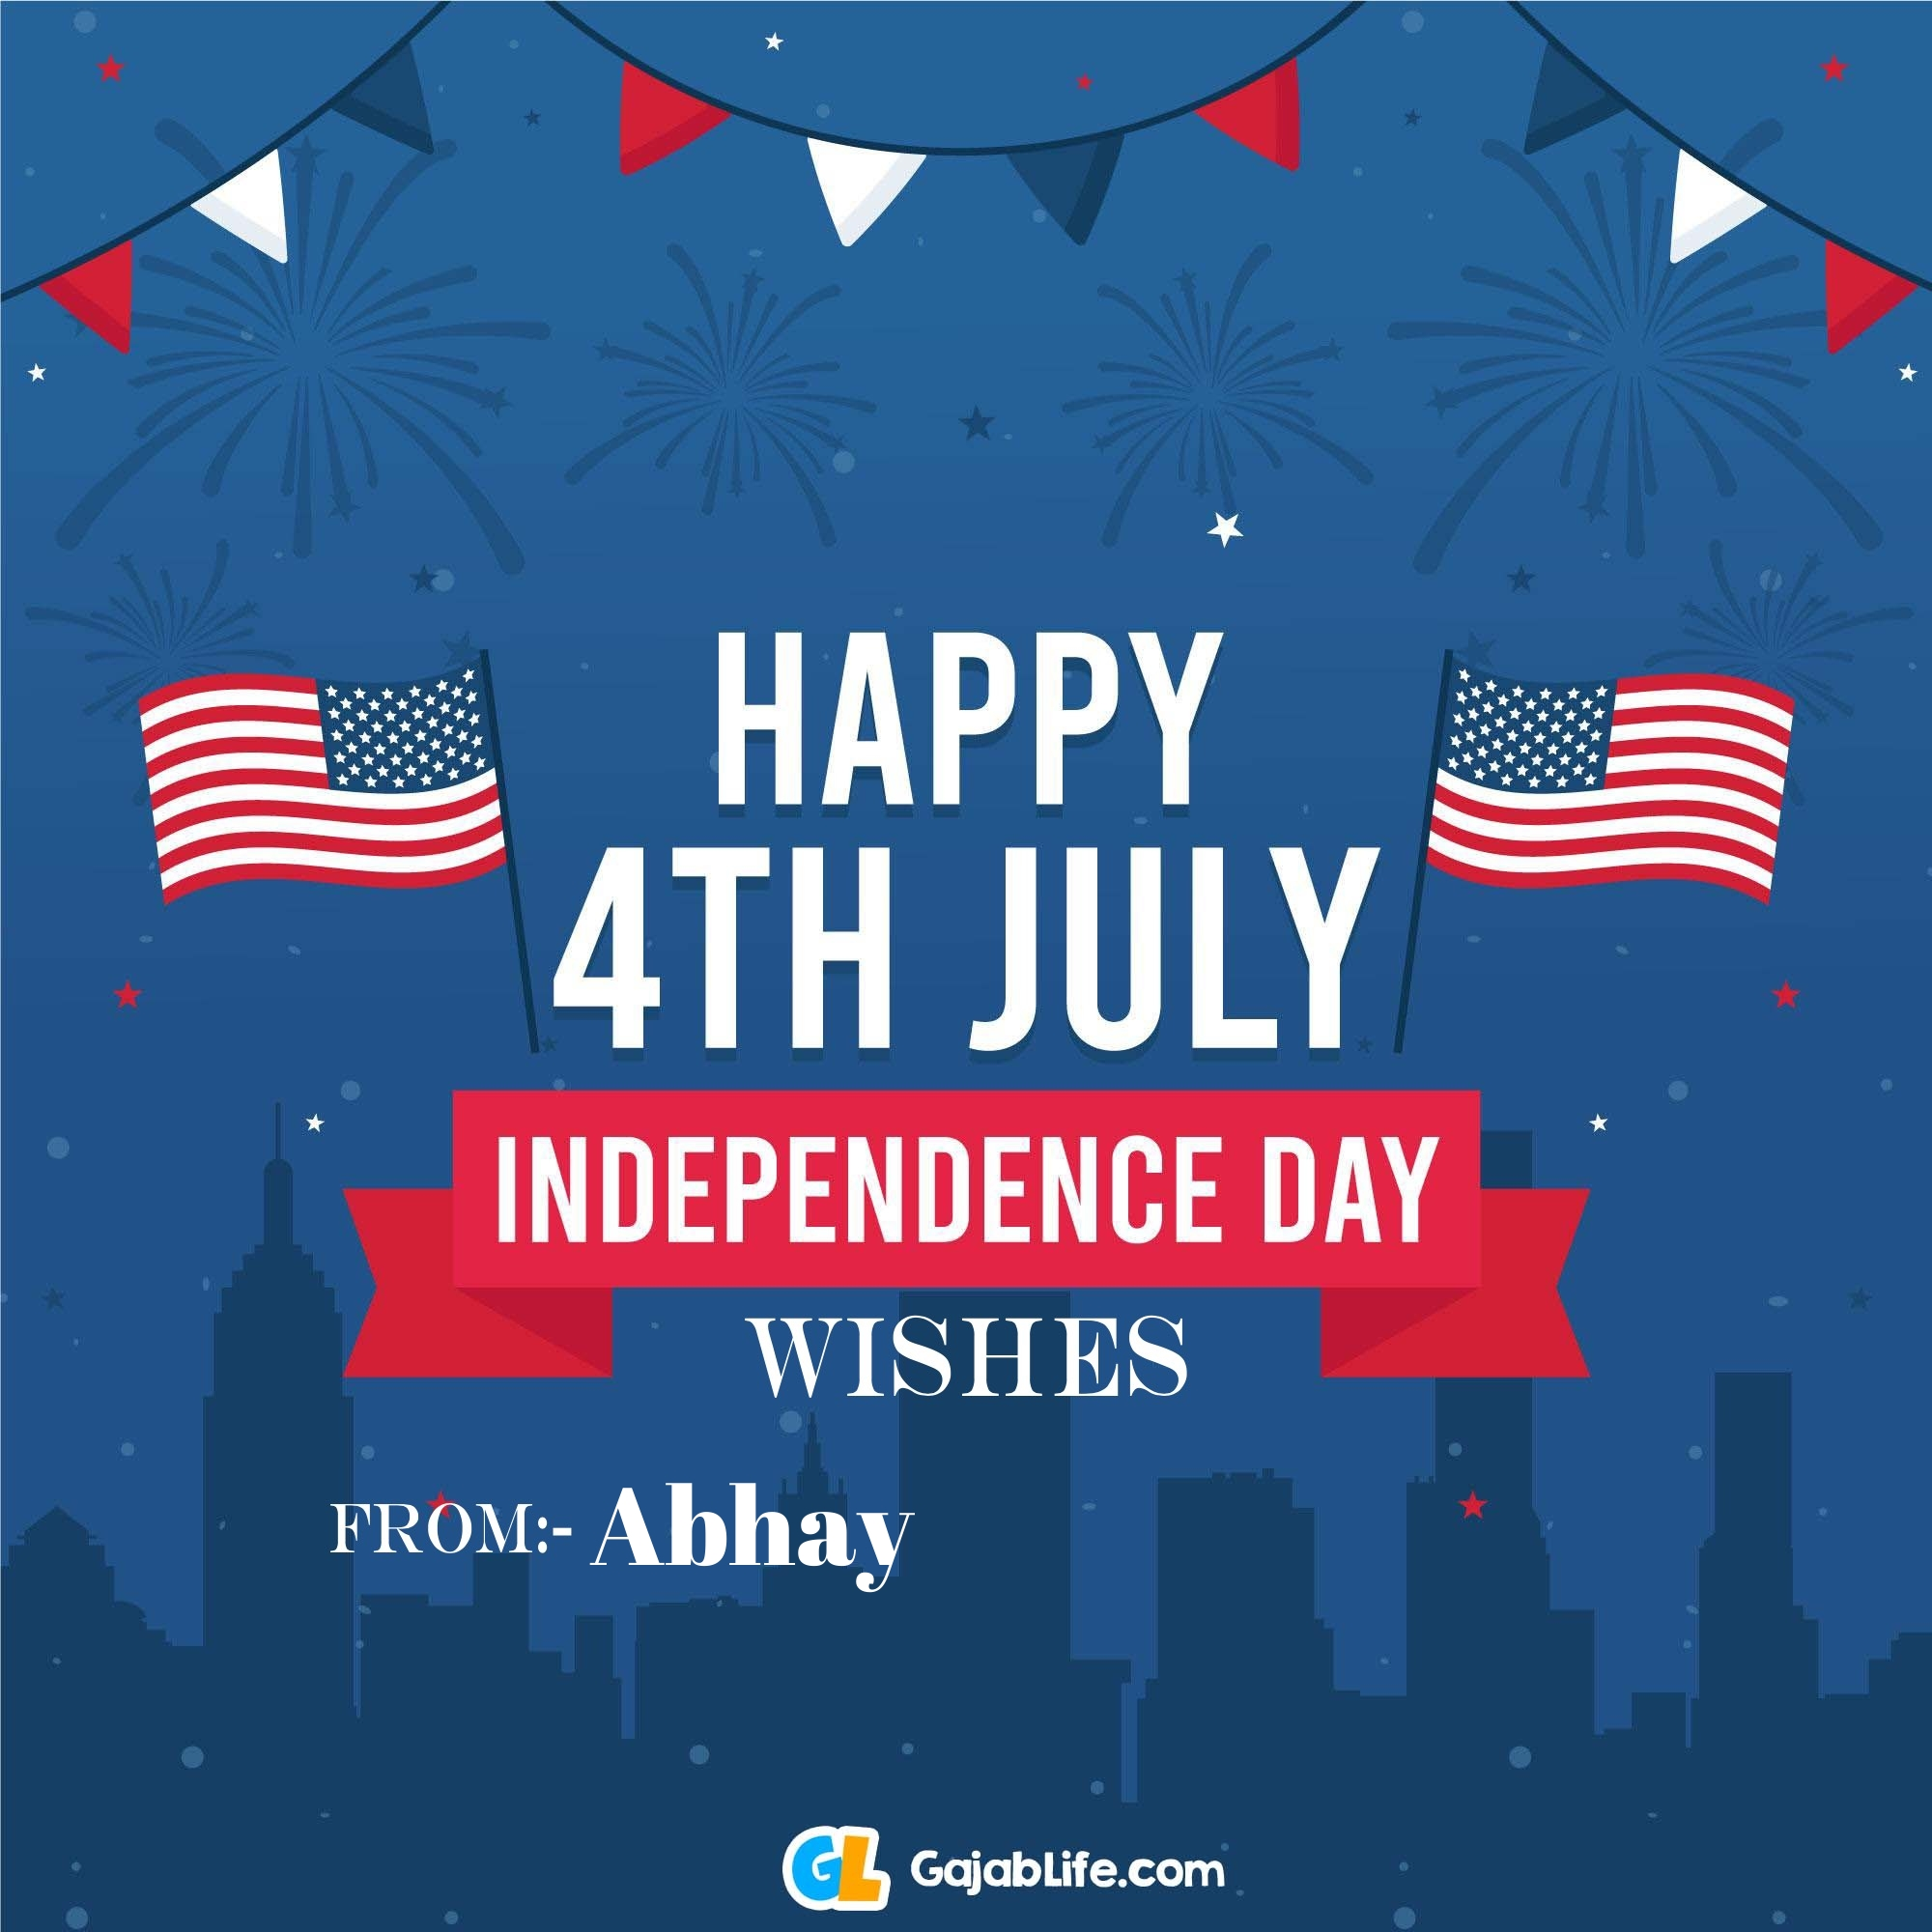 Abhay happy independence day united states of america images